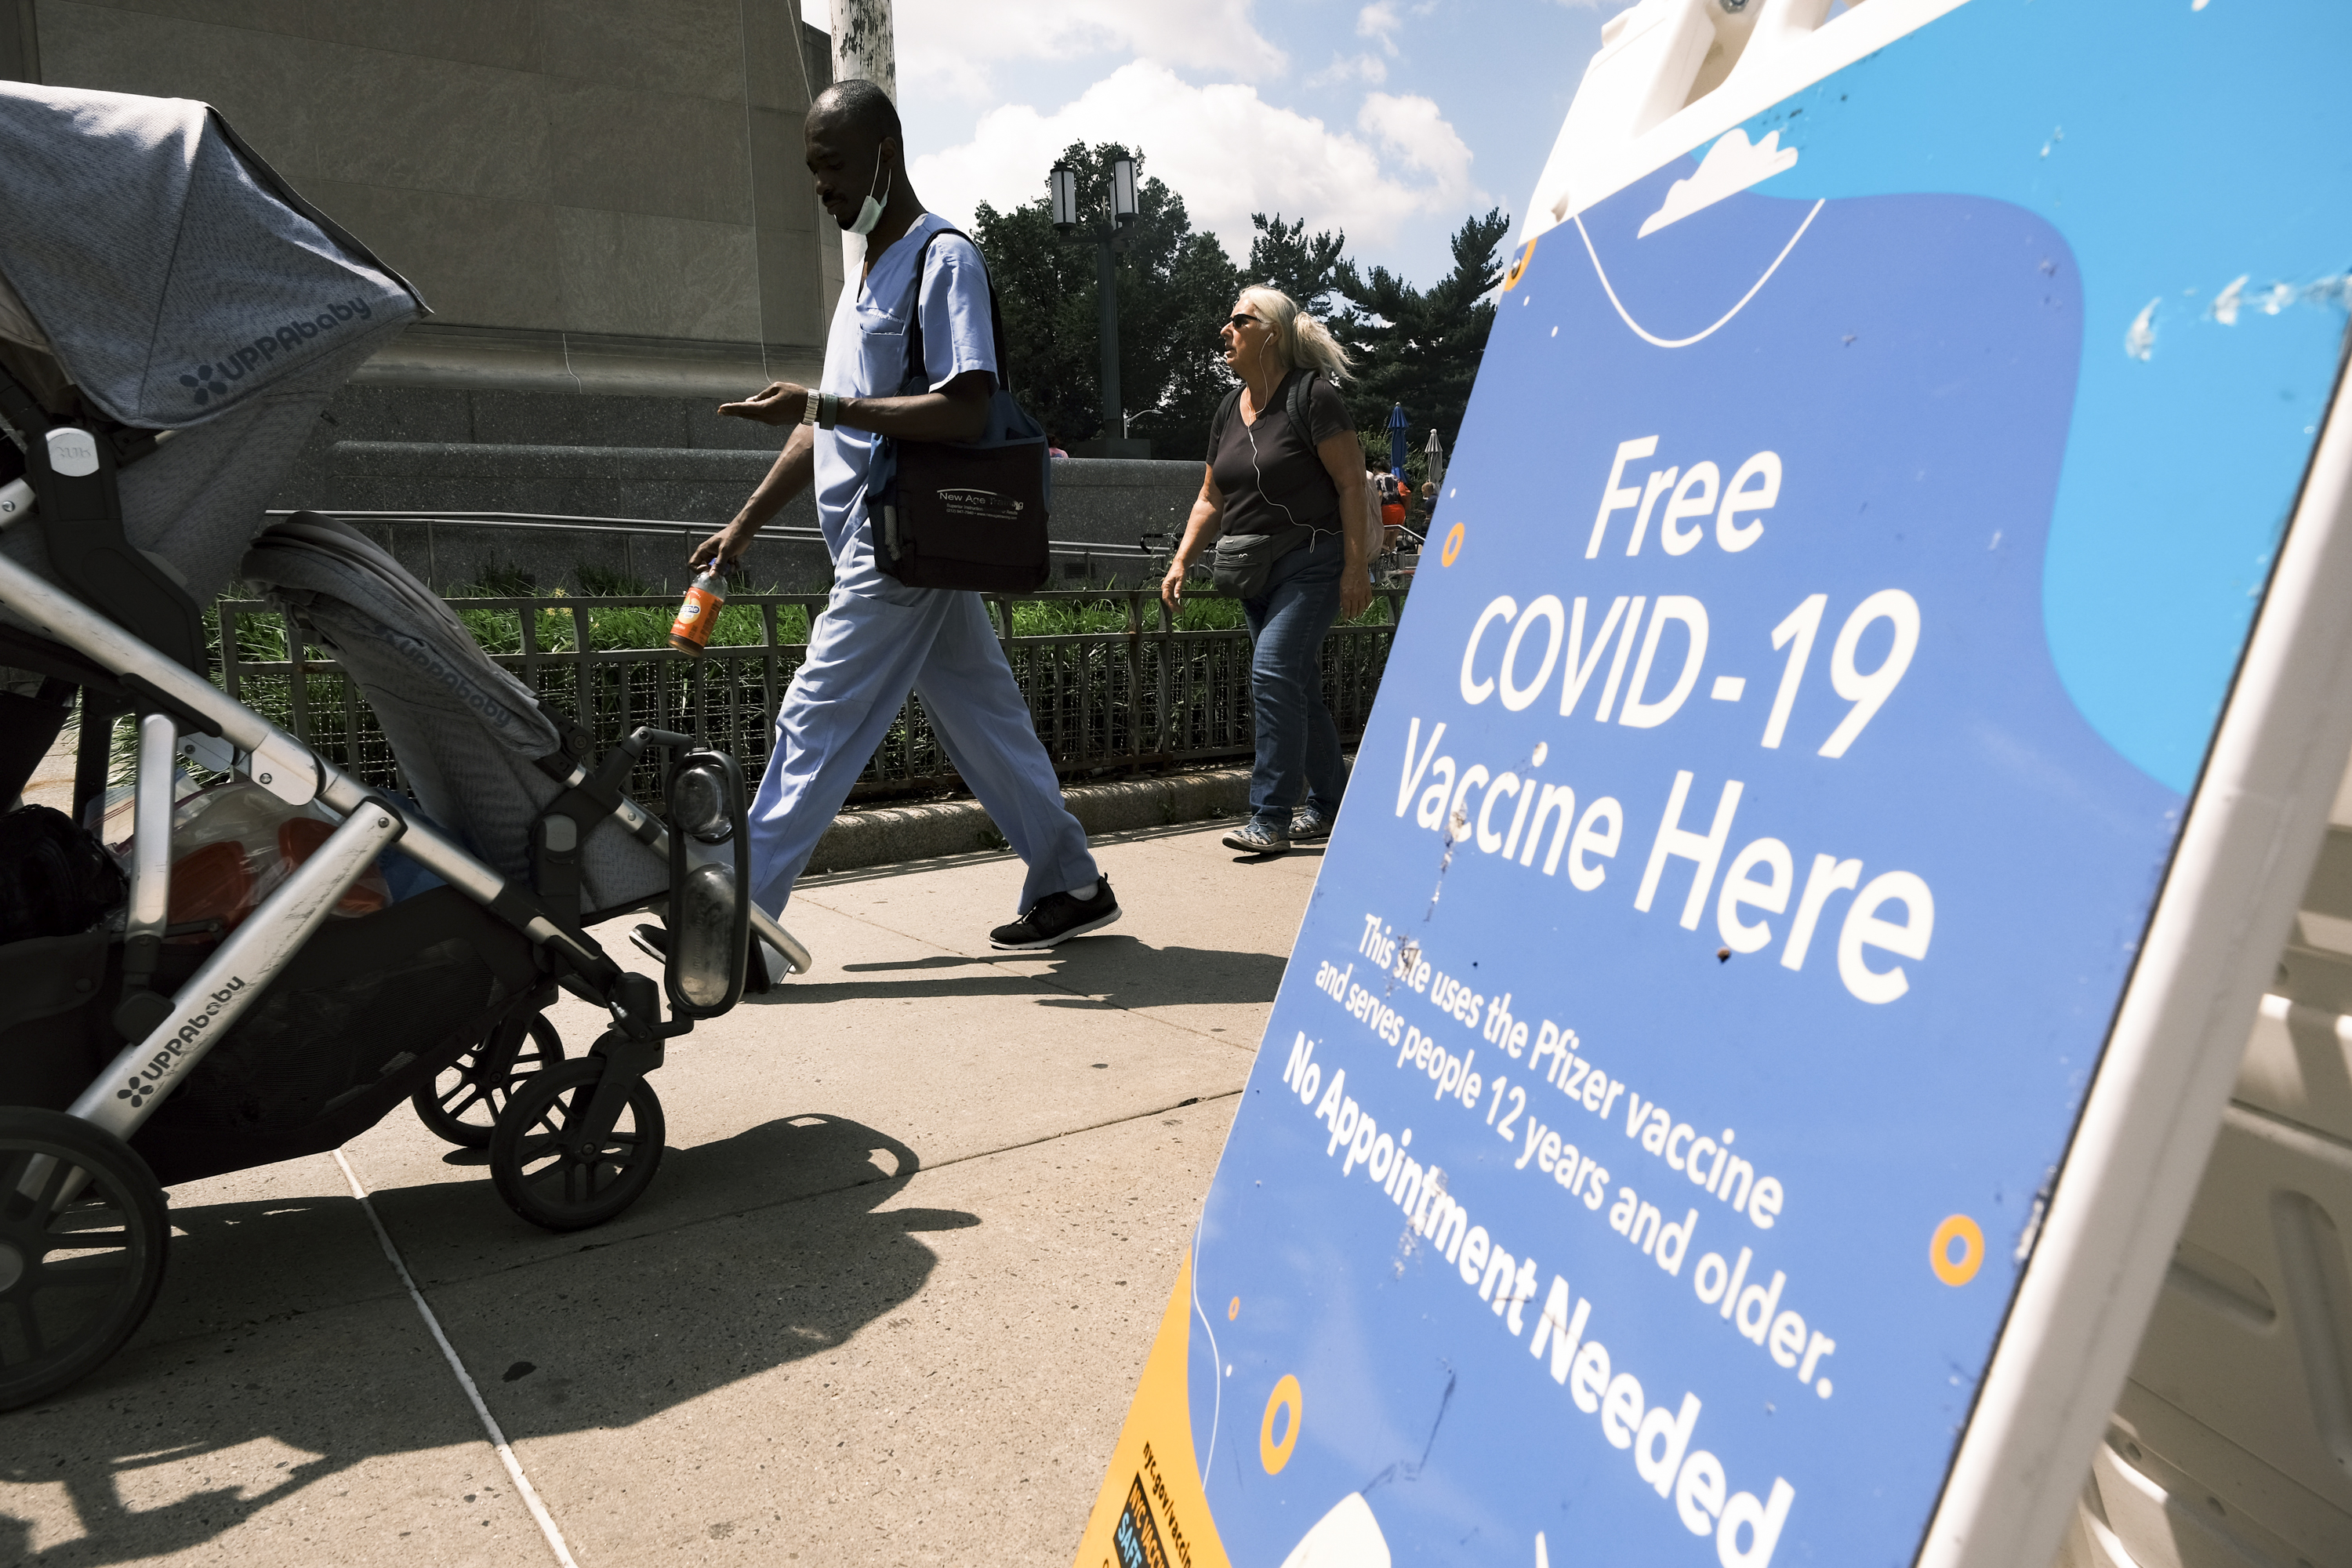 """Pedestrians, one pushing a stroller, walk past a sidewalk sign that reads, """"Free Covid-19 vaccine here."""""""